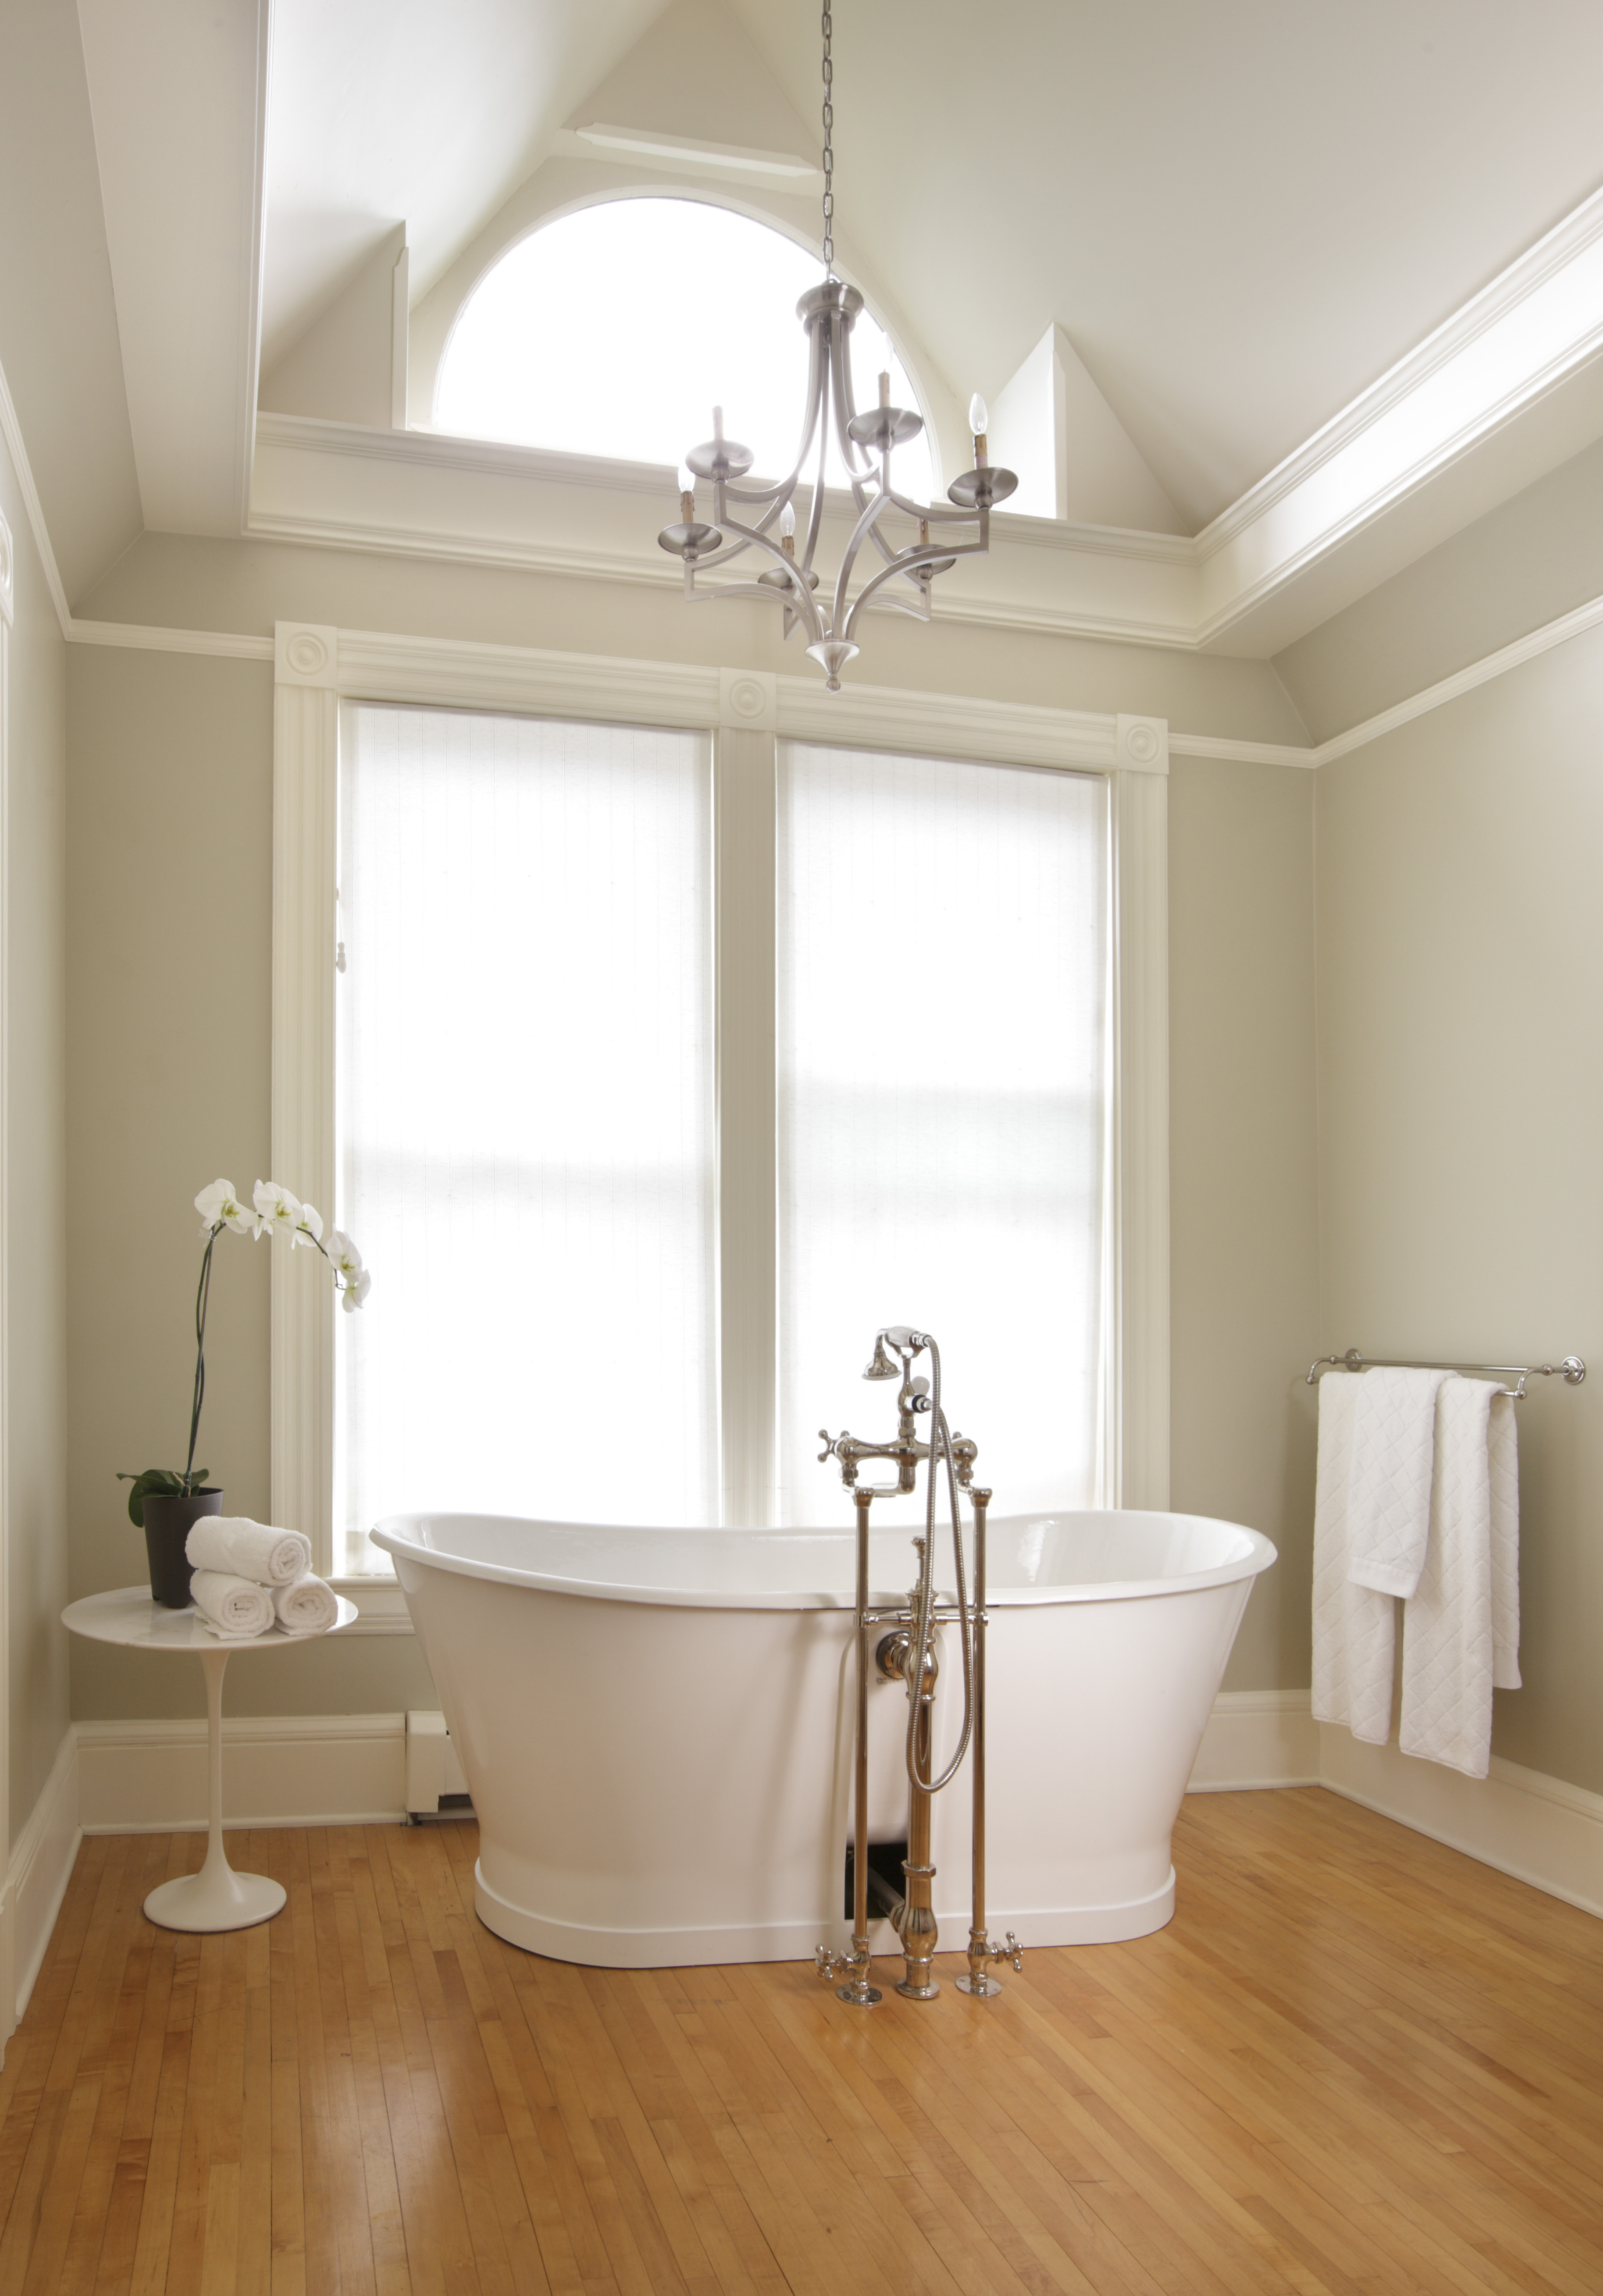 5 Tips to Add More Comfort and Joy to your Bathroom   Inside Arciform